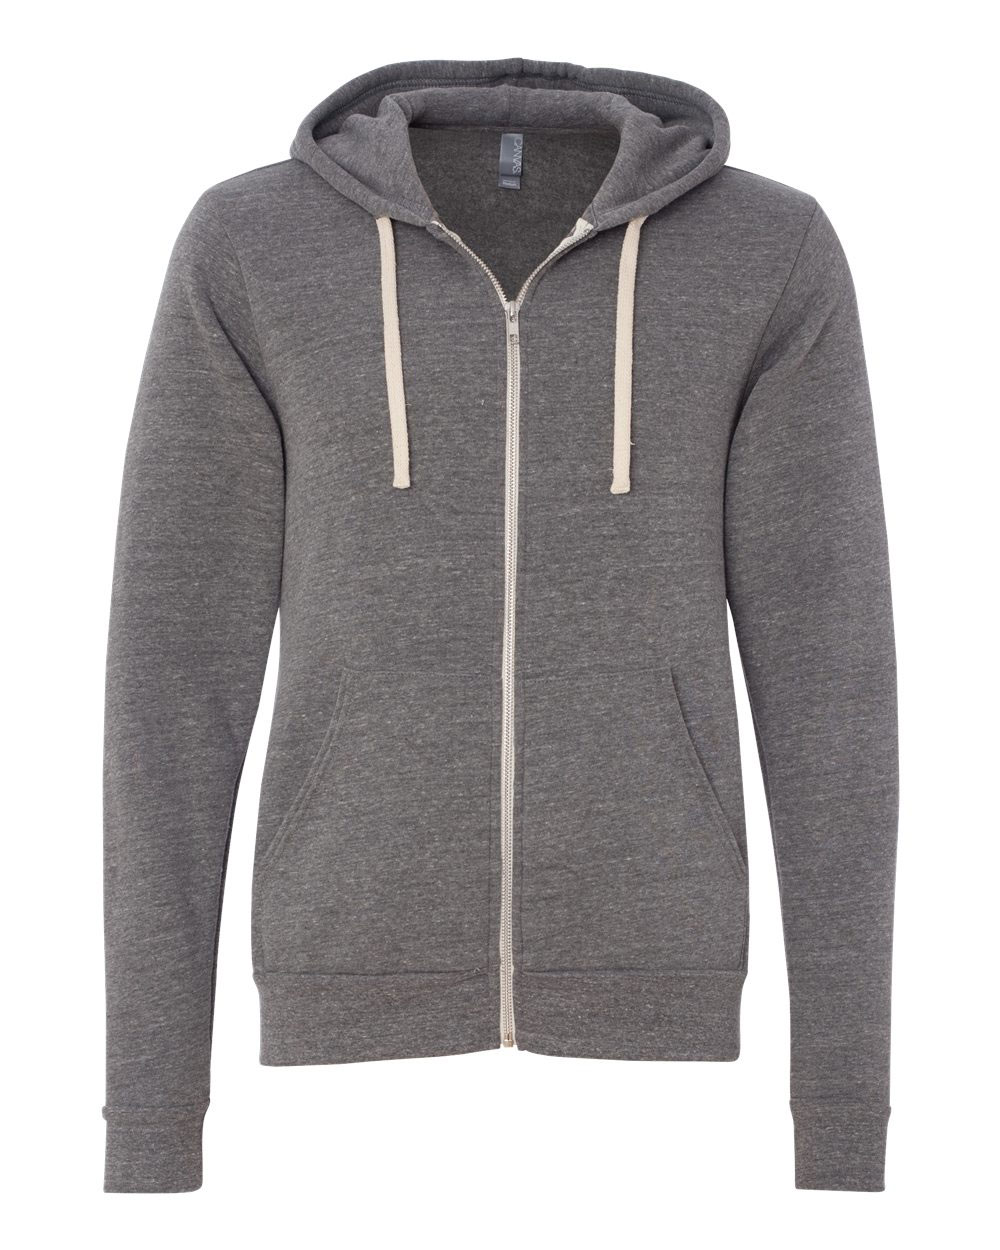 Bella + Canvas Unisex Triblend Sponge Fleece Full-Zip Hoodie